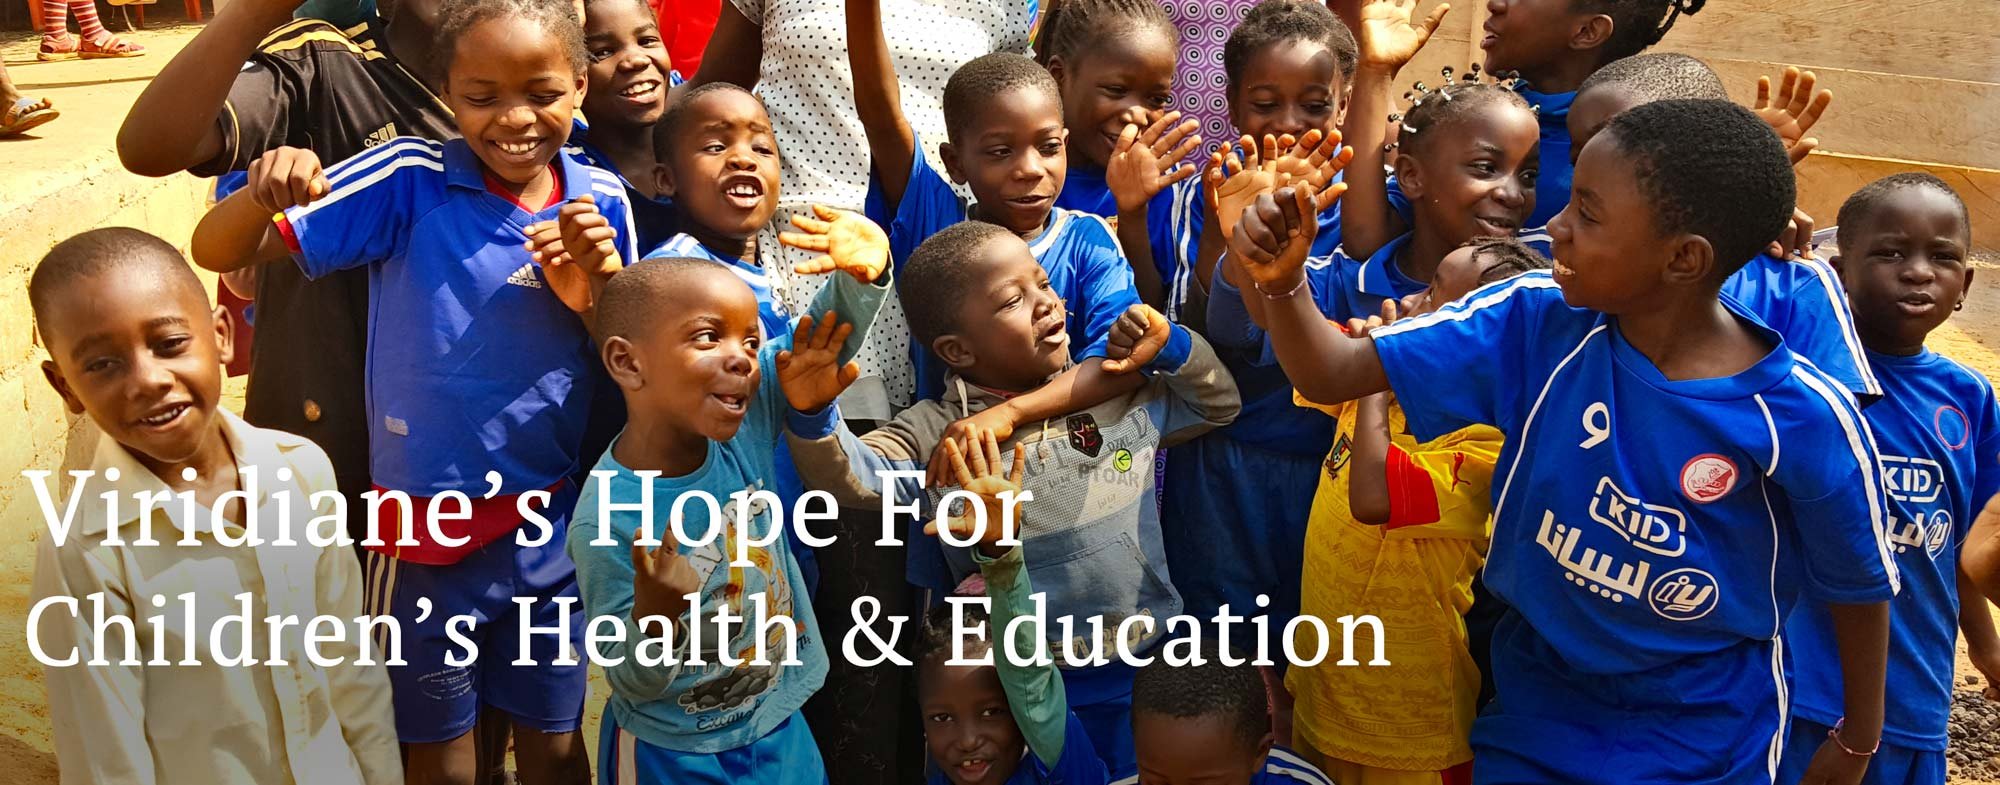 Viridiane's Hope for Children's Health and Education - VHCHE, a Virginia Non-Profit Corporation Exempt under IRC Section 501(c)(3)